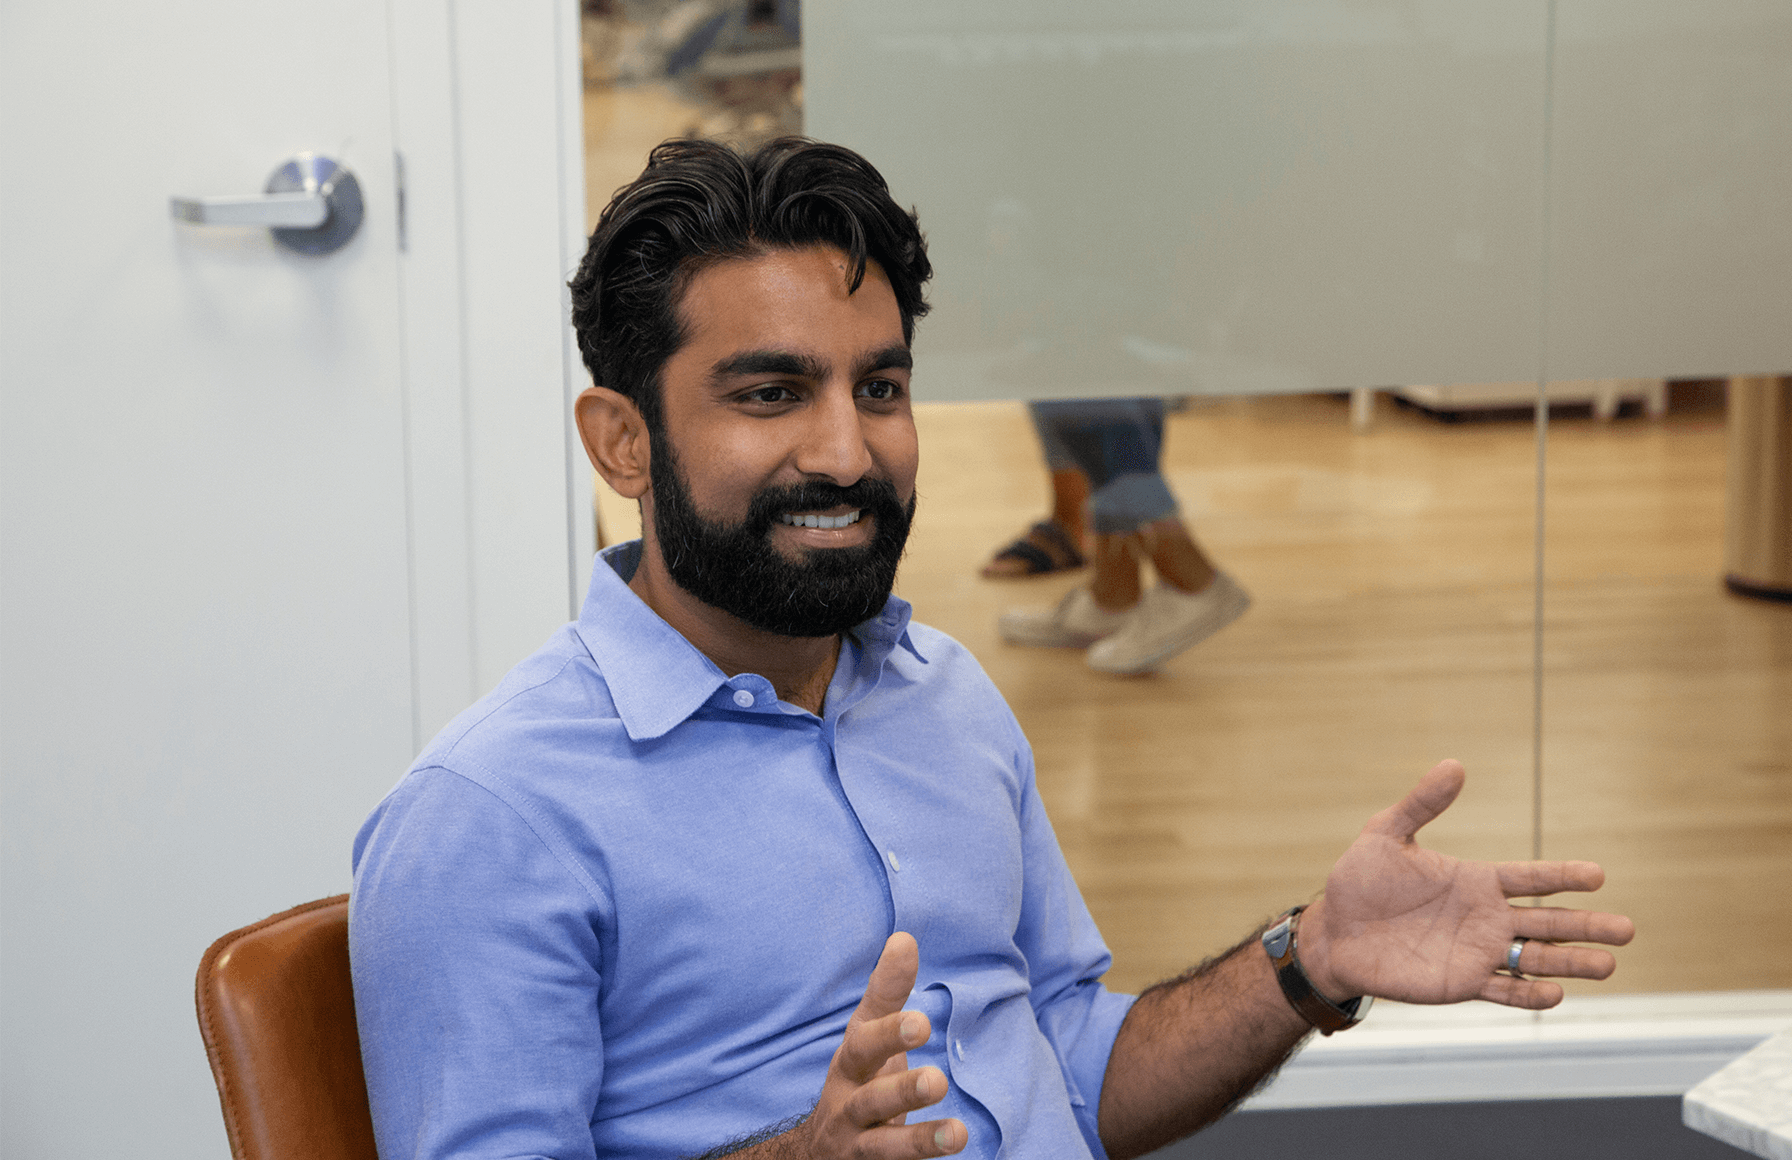 Rahil Esmail, Head of Product at Orchard